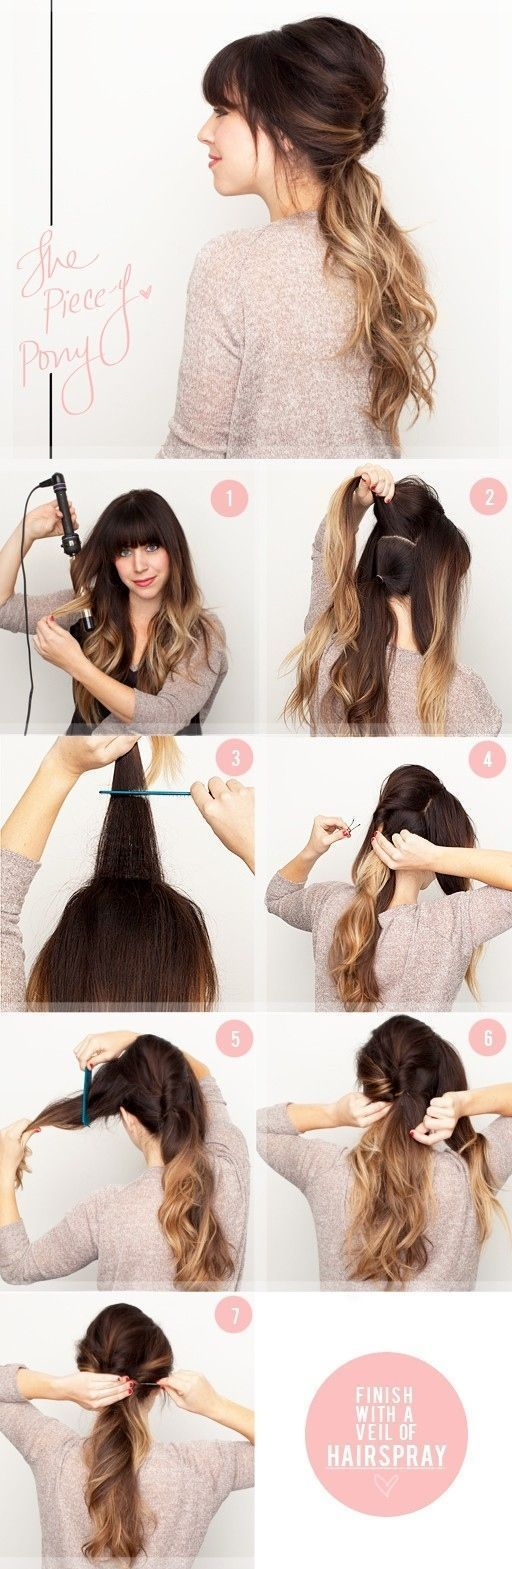 Creative Hairstyles That You Can Easily Do at Home